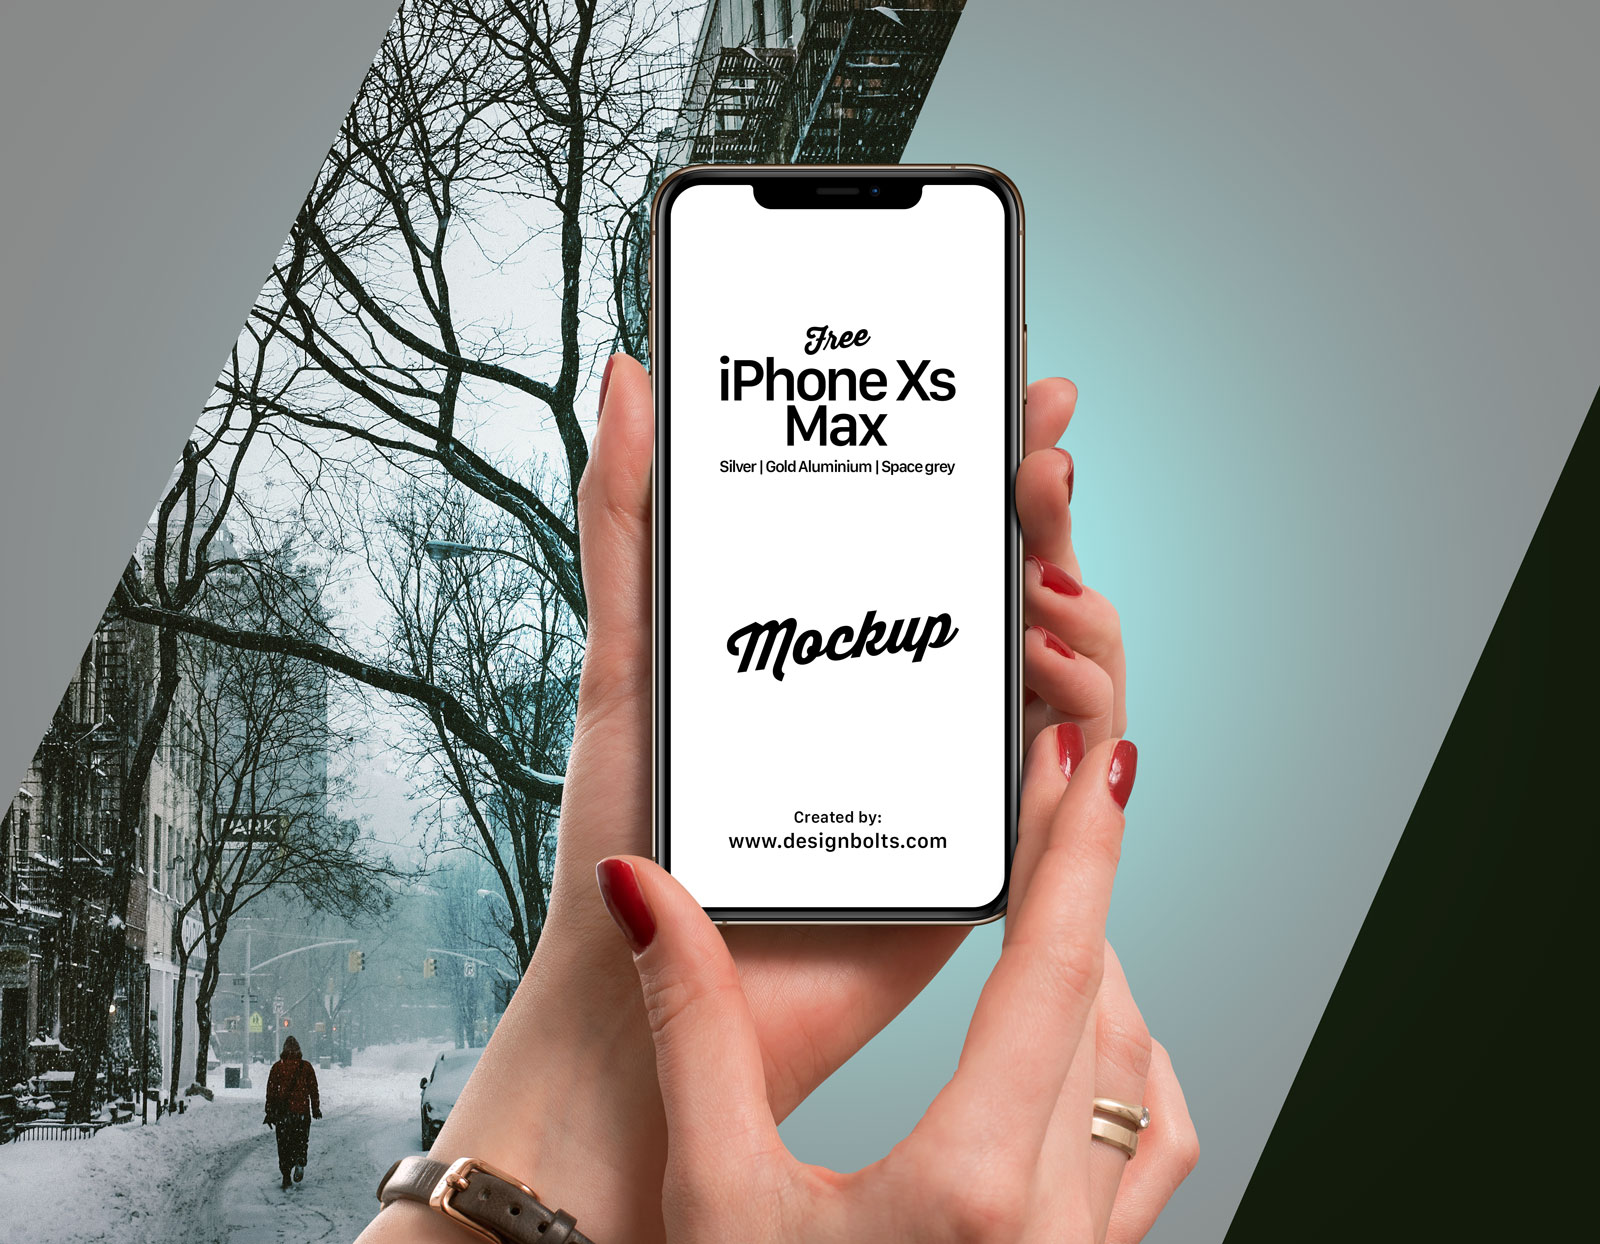 Free-iPhone-Xs-Max-in-Female-Hand-Mockup-PSD-3